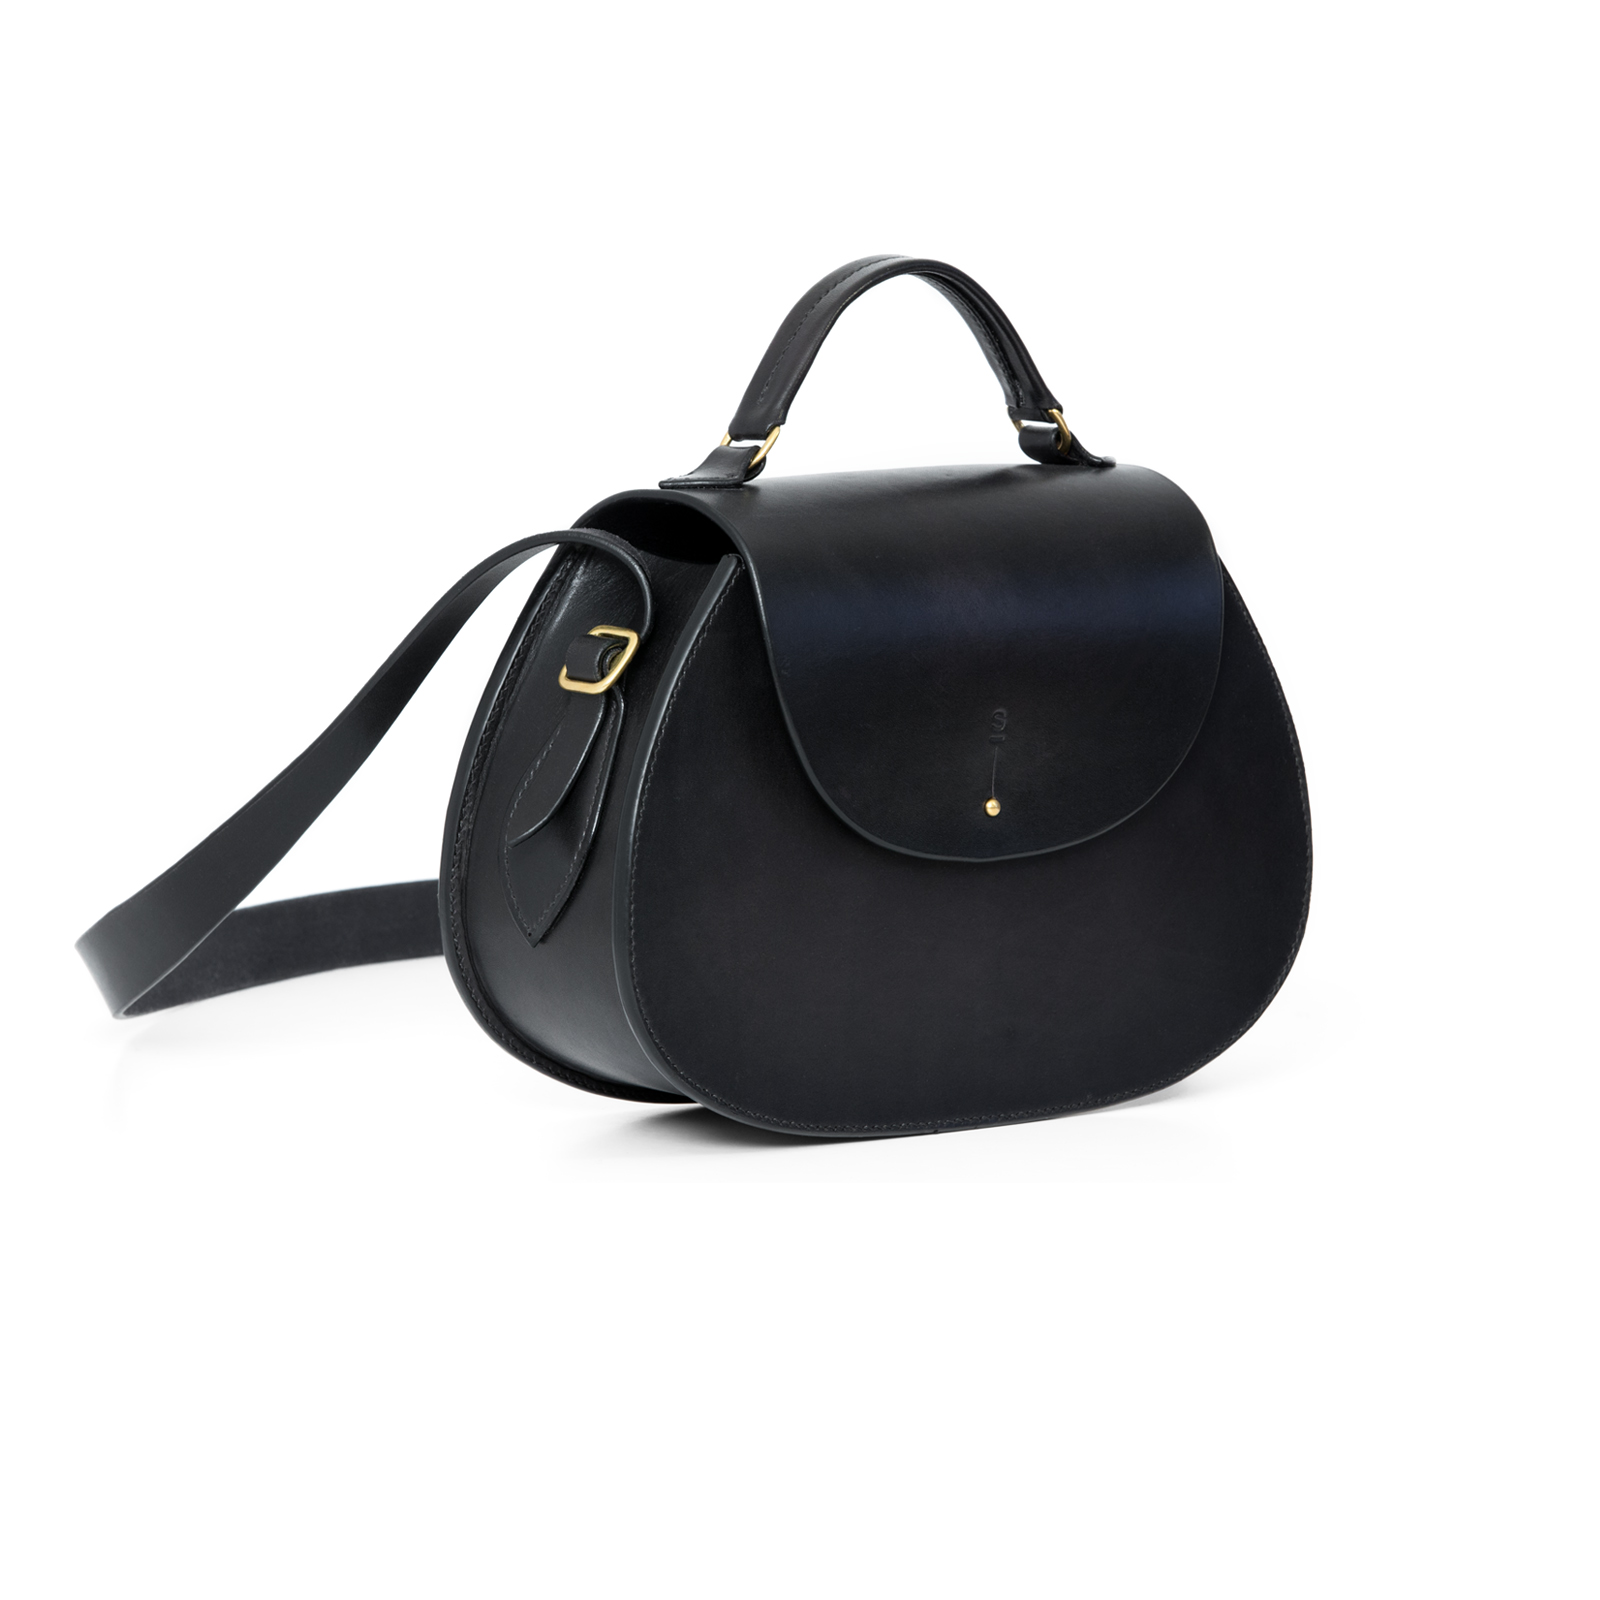 Large Black Abigail cross body bag luxury handcrafted english bridle leather goods